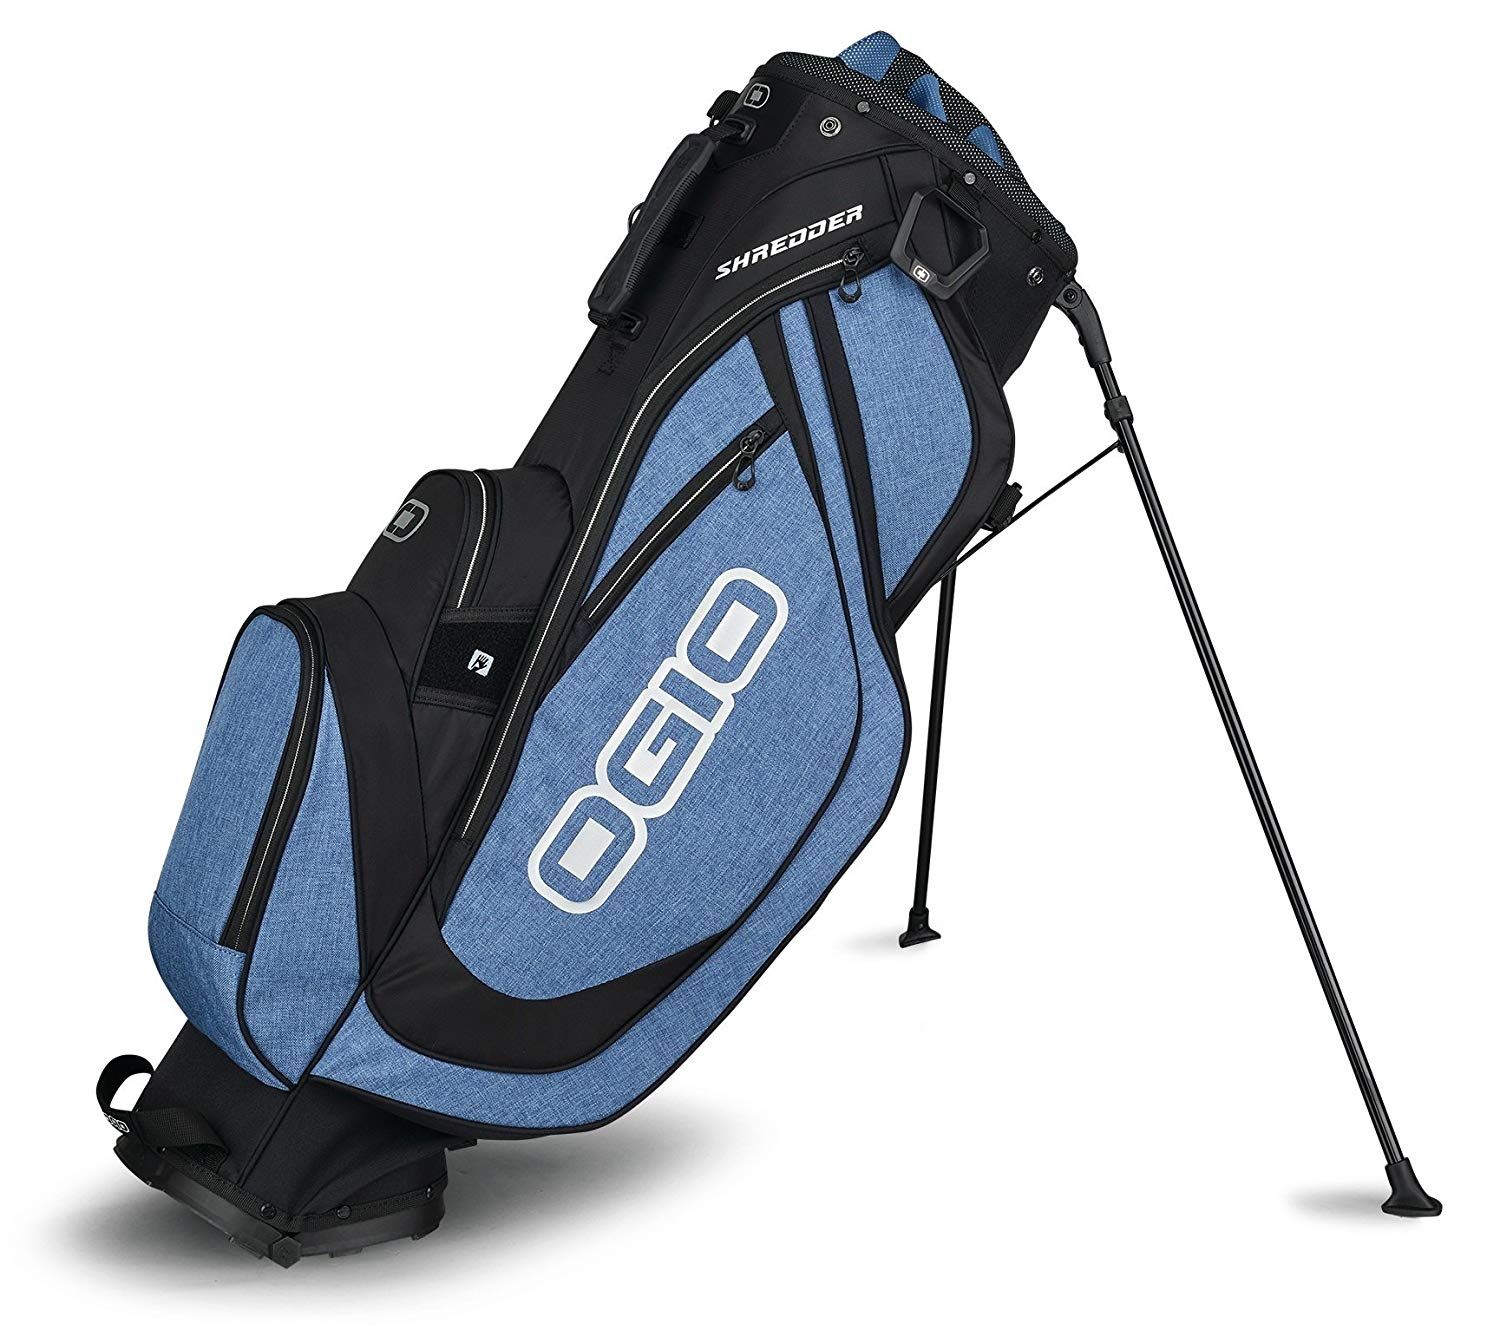 Ogio 2018 Shredder Golf Stand Bags